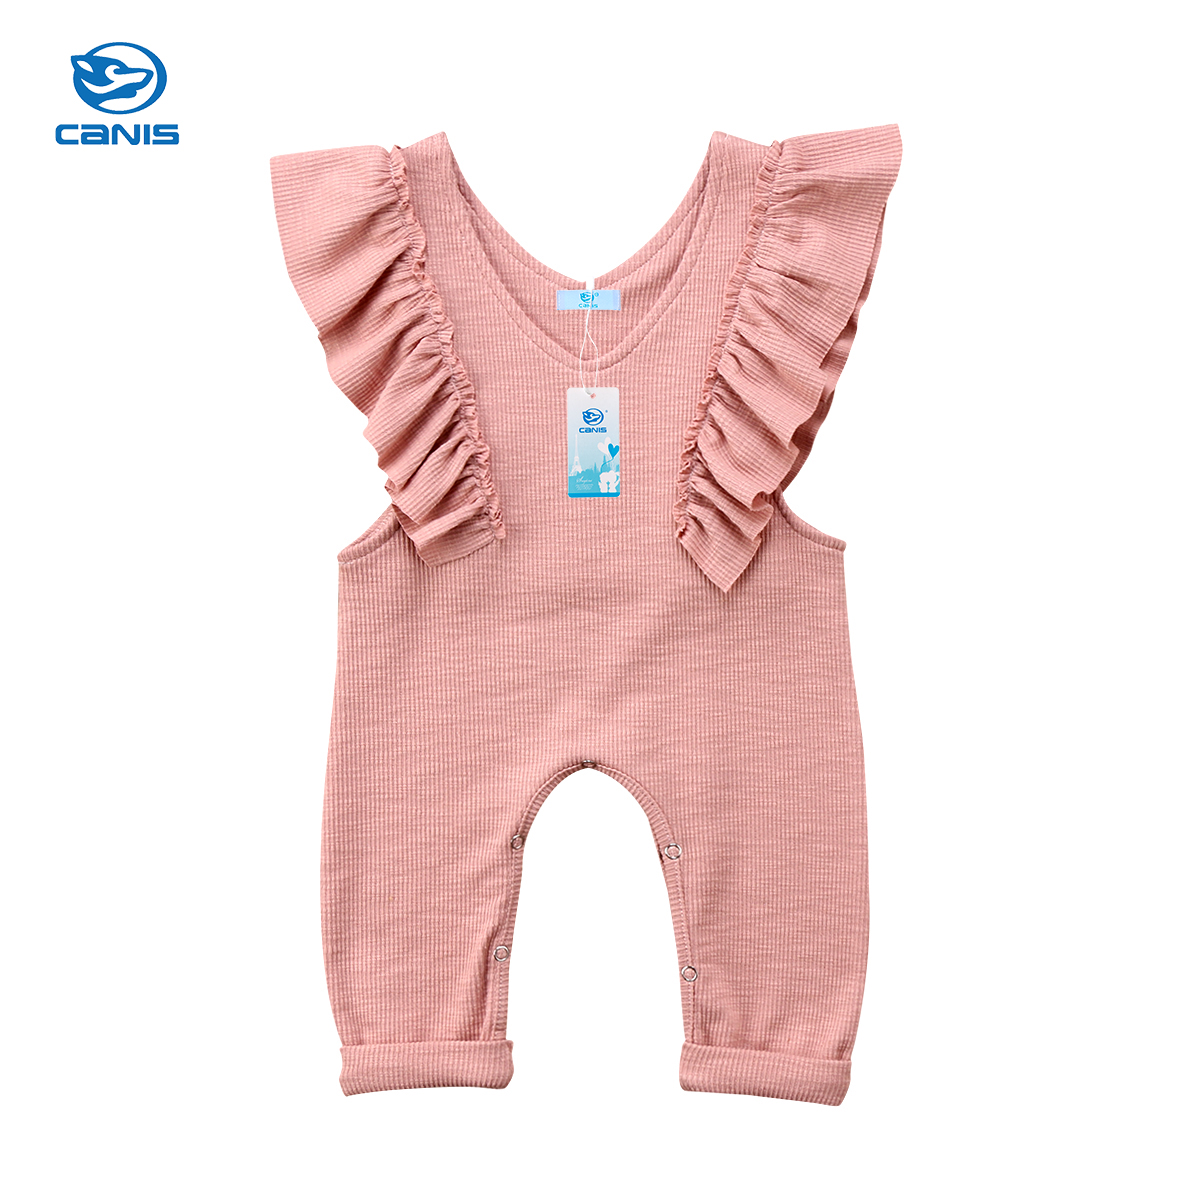 2018 Newborn Kids Baby Girls Romper Ruffle Lovely Romper Jumpsuit Knitted Romper Outfit Clothes Summer fashion 2pcs set newborn baby girls jumpsuit toddler girls flower pattern outfit clothes romper bodysuit pants